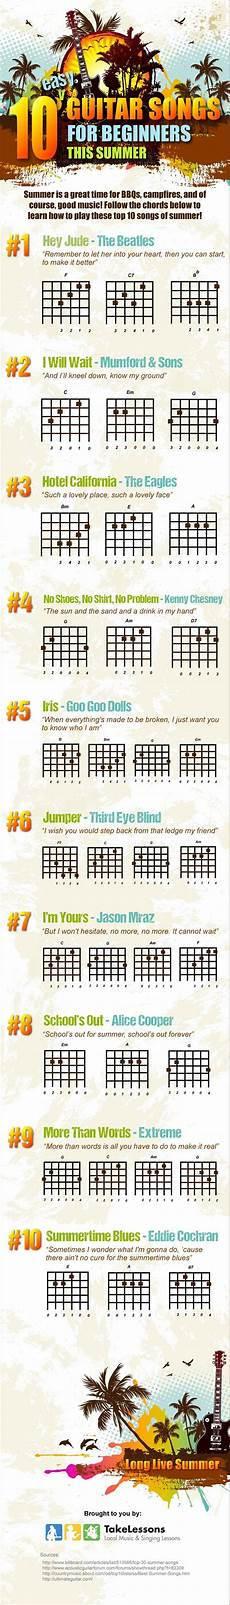 beginner songs to learn on guitar 10 easy guitar songs for beginners this summer maybe one day soon i ll learn to play again